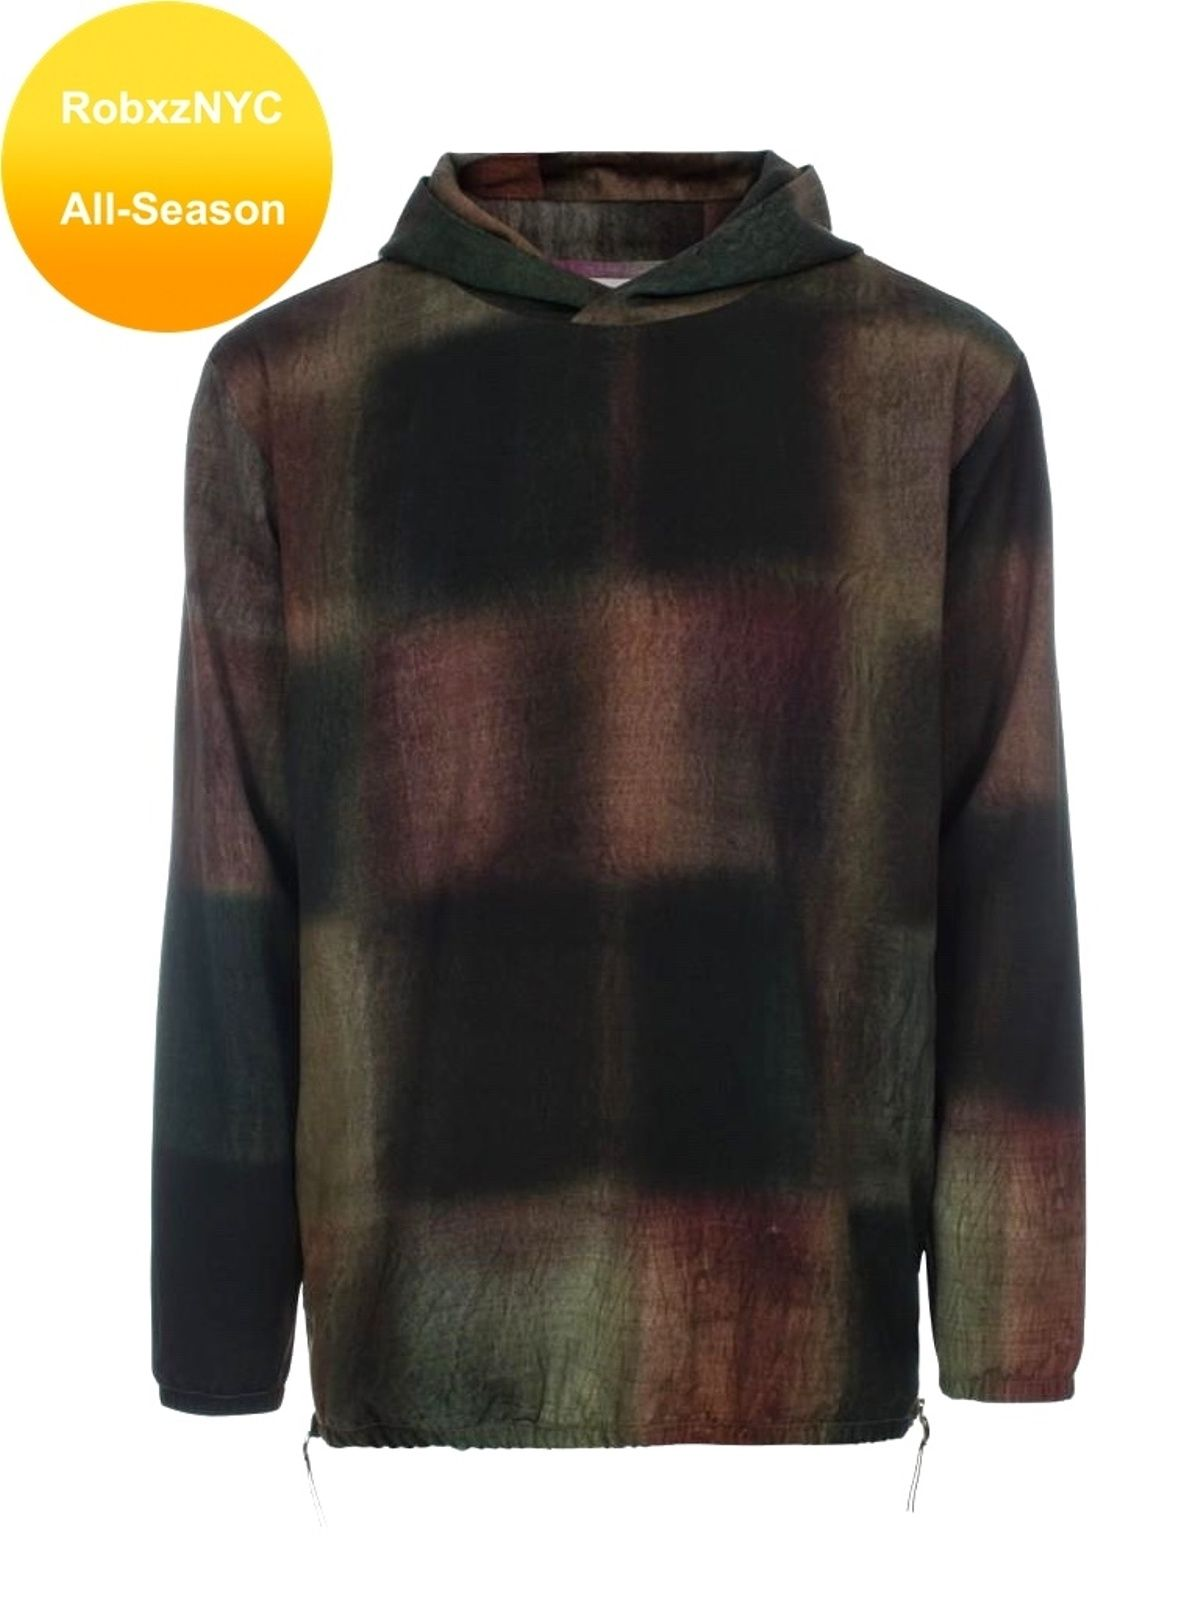 96a212dd4 SOLD: Paul Smith Men's Wool Side Zip Hoodie Blurred Check Print size ...